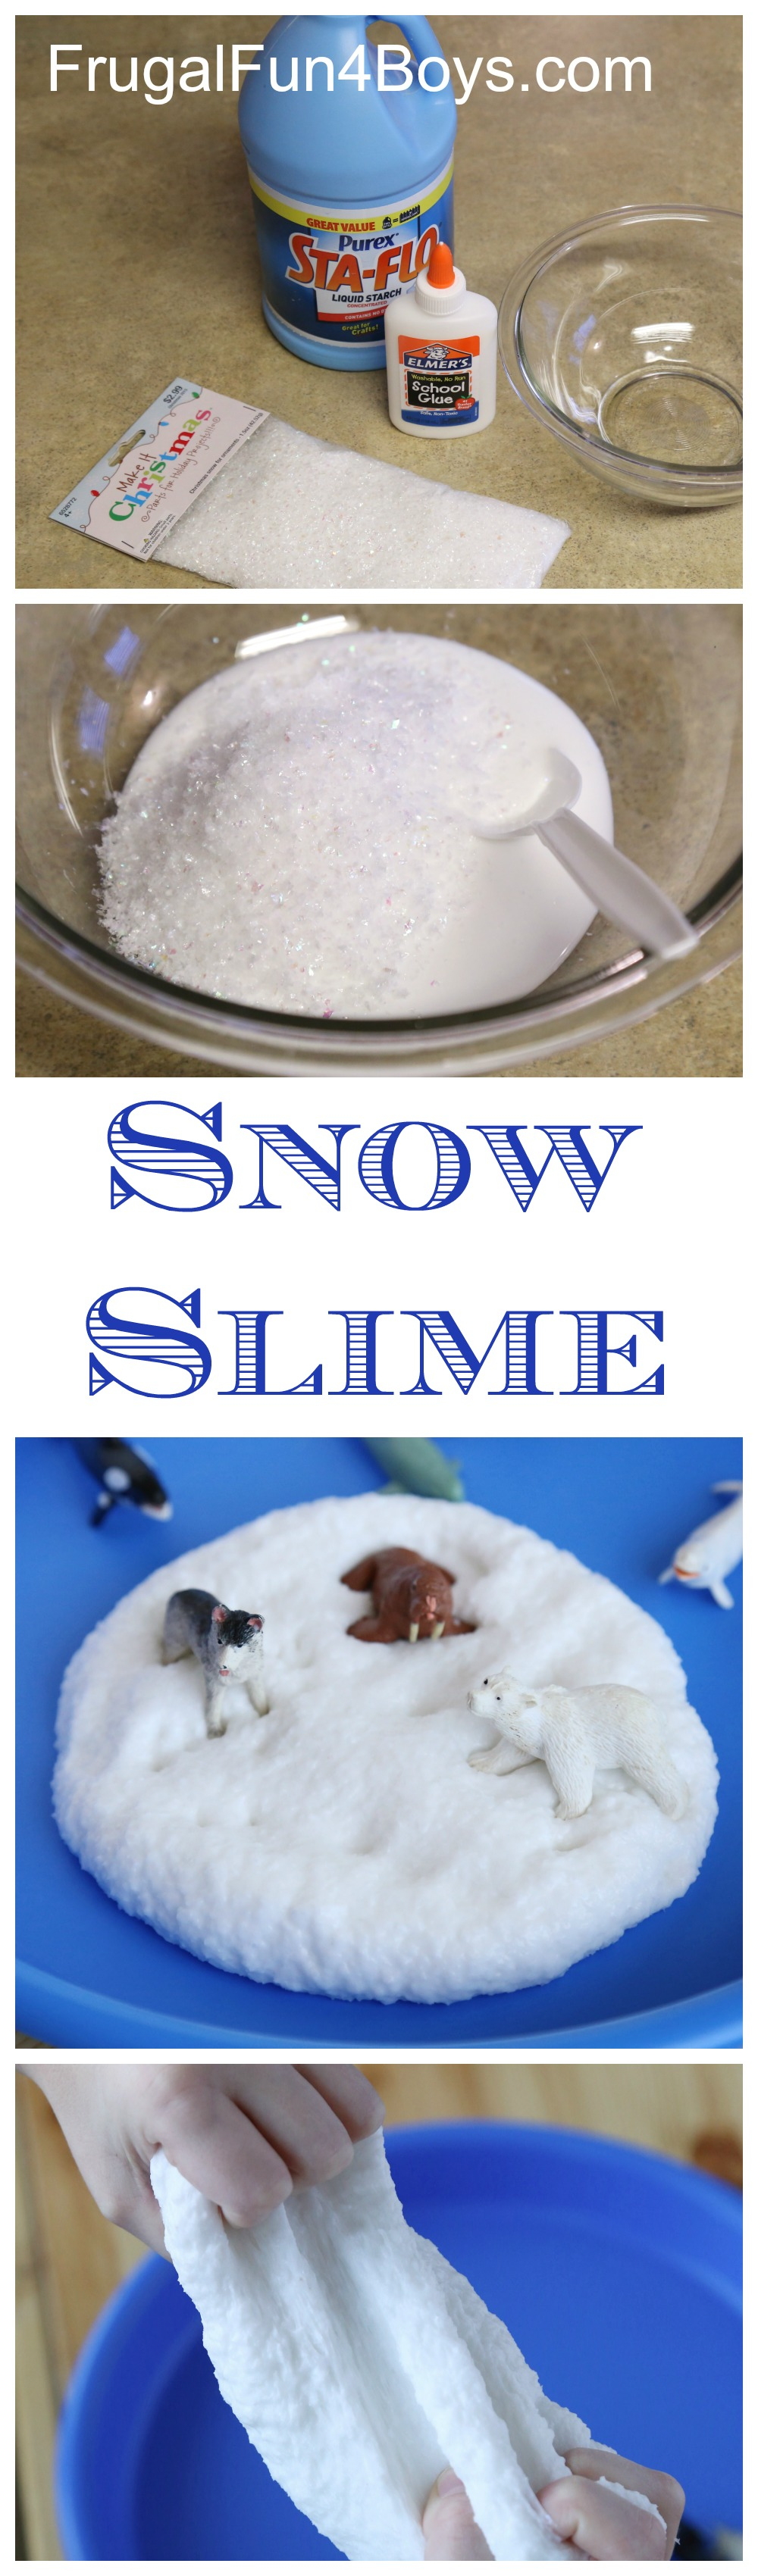 How To Make Snow Slime Frugal Fun For Boys And Girls